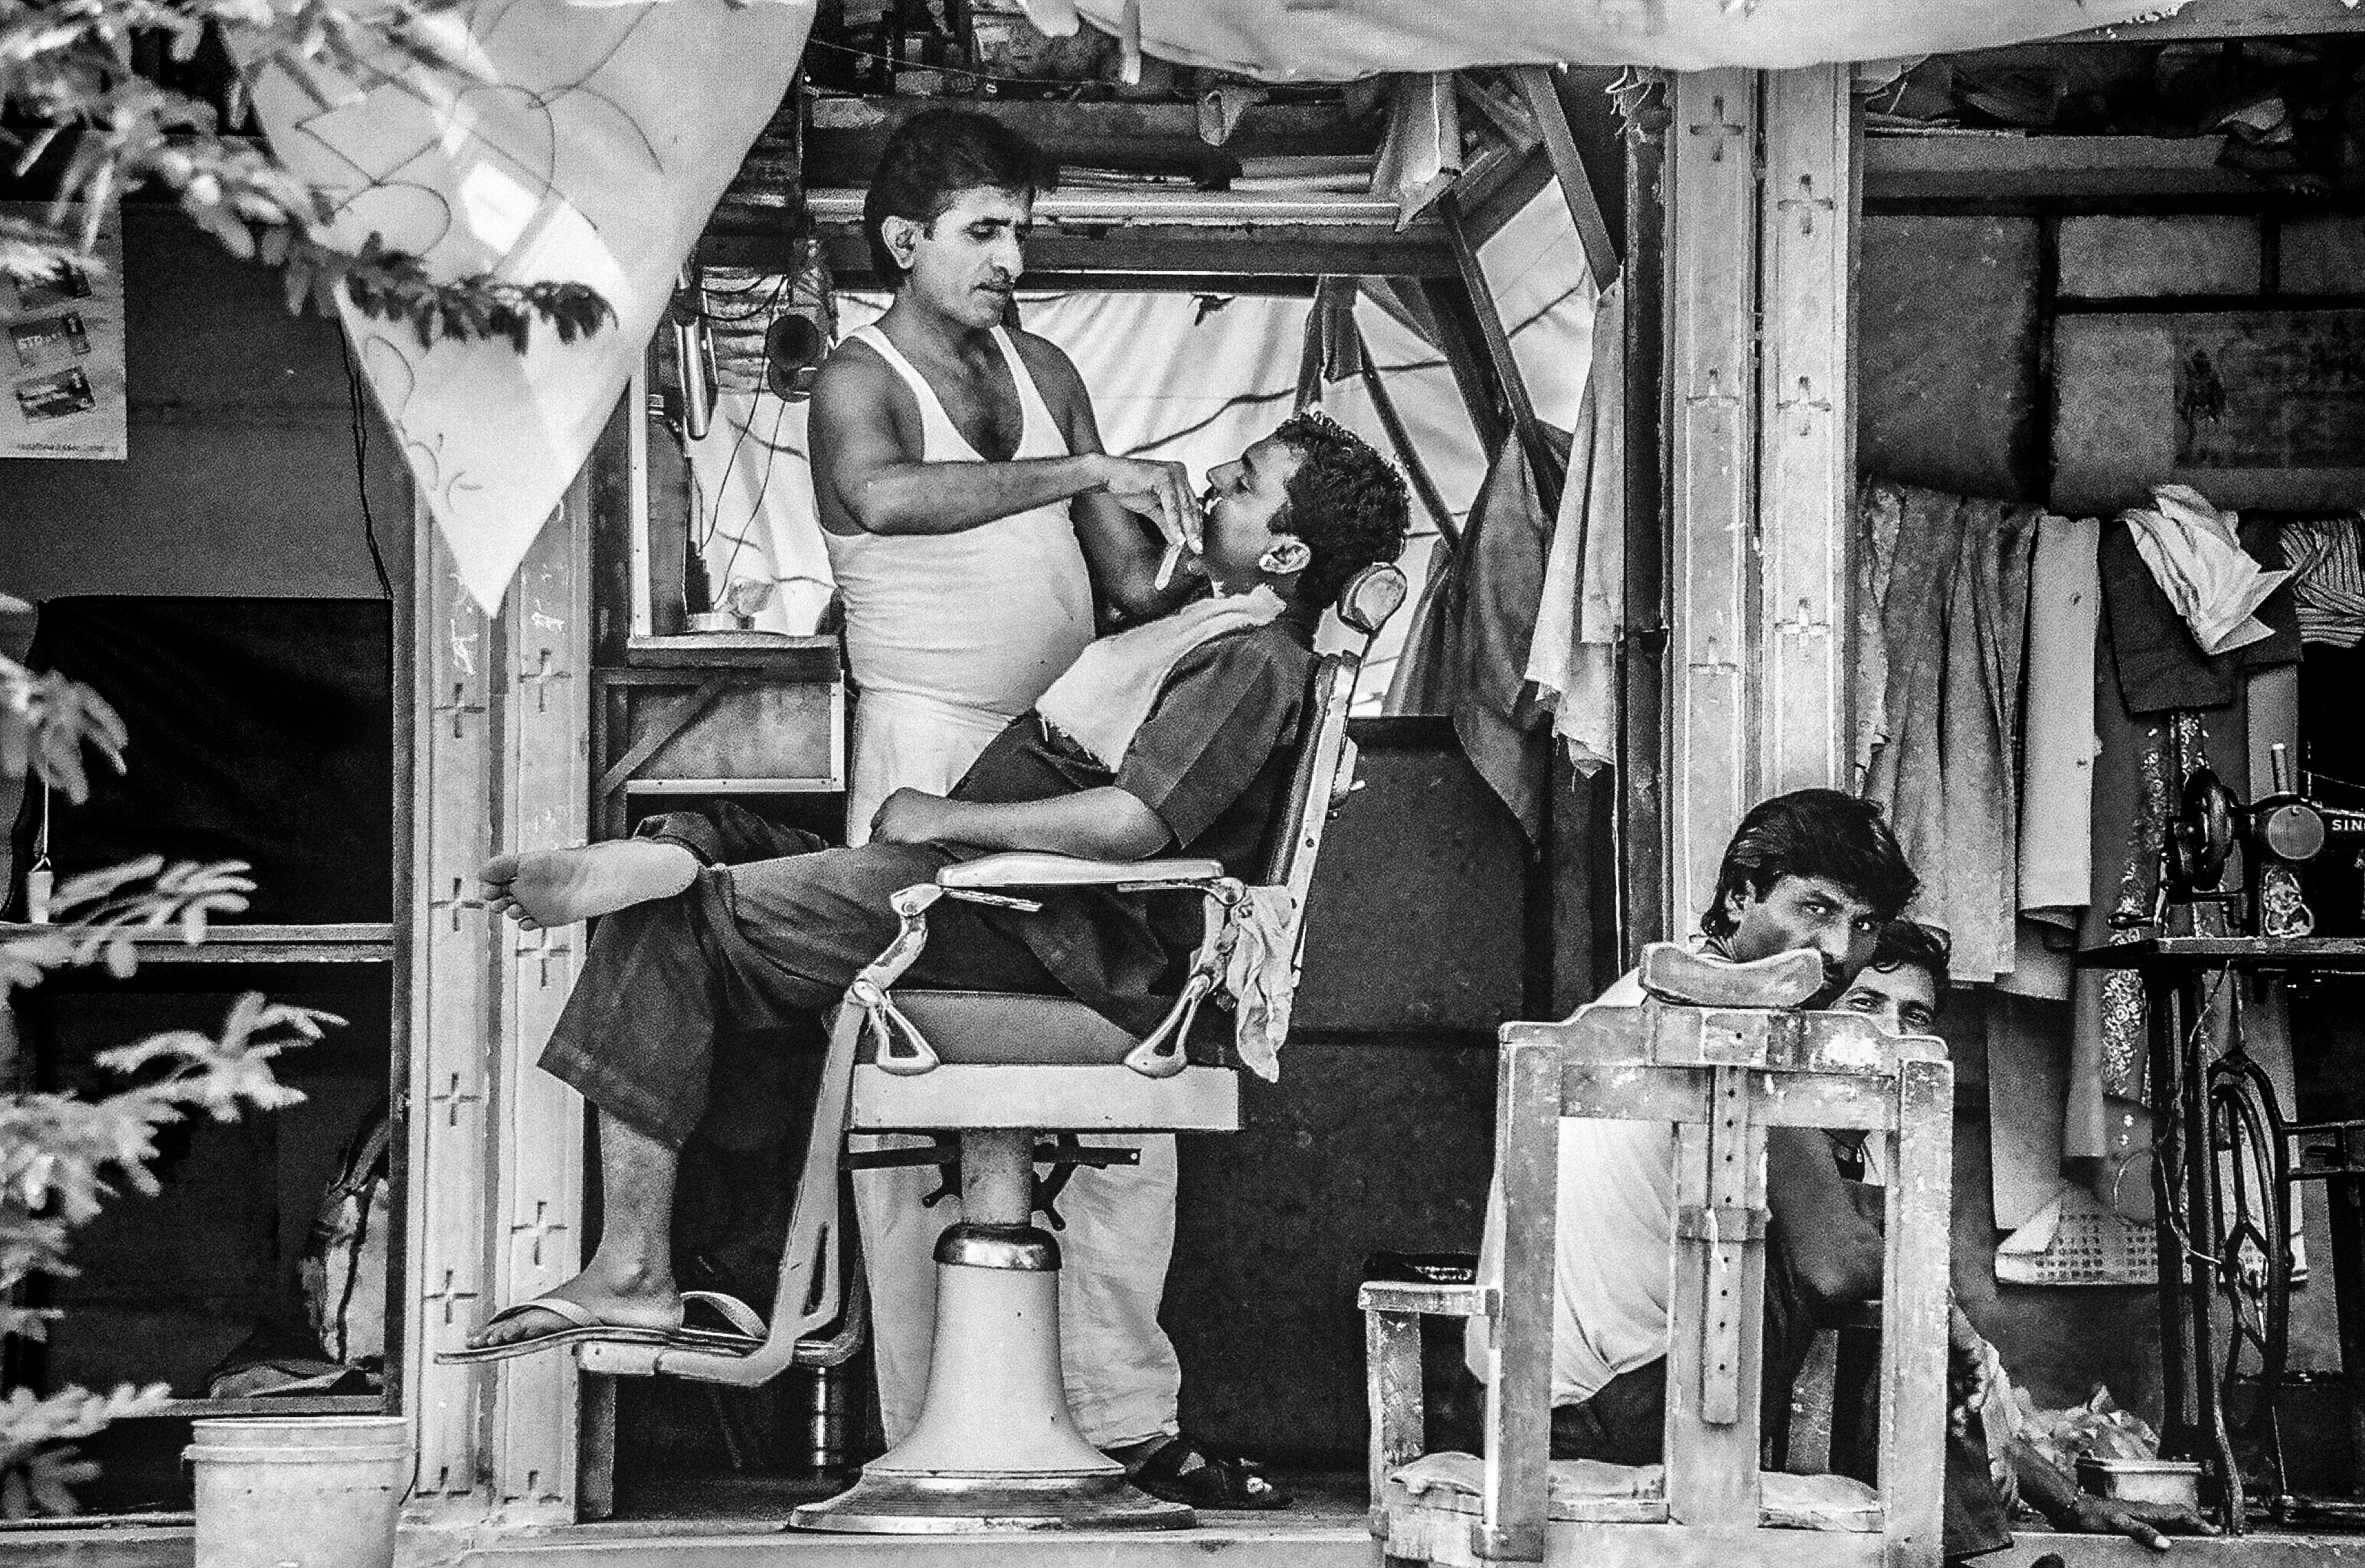 Black and white shot of street barber shop and man getting a shaved sitting down